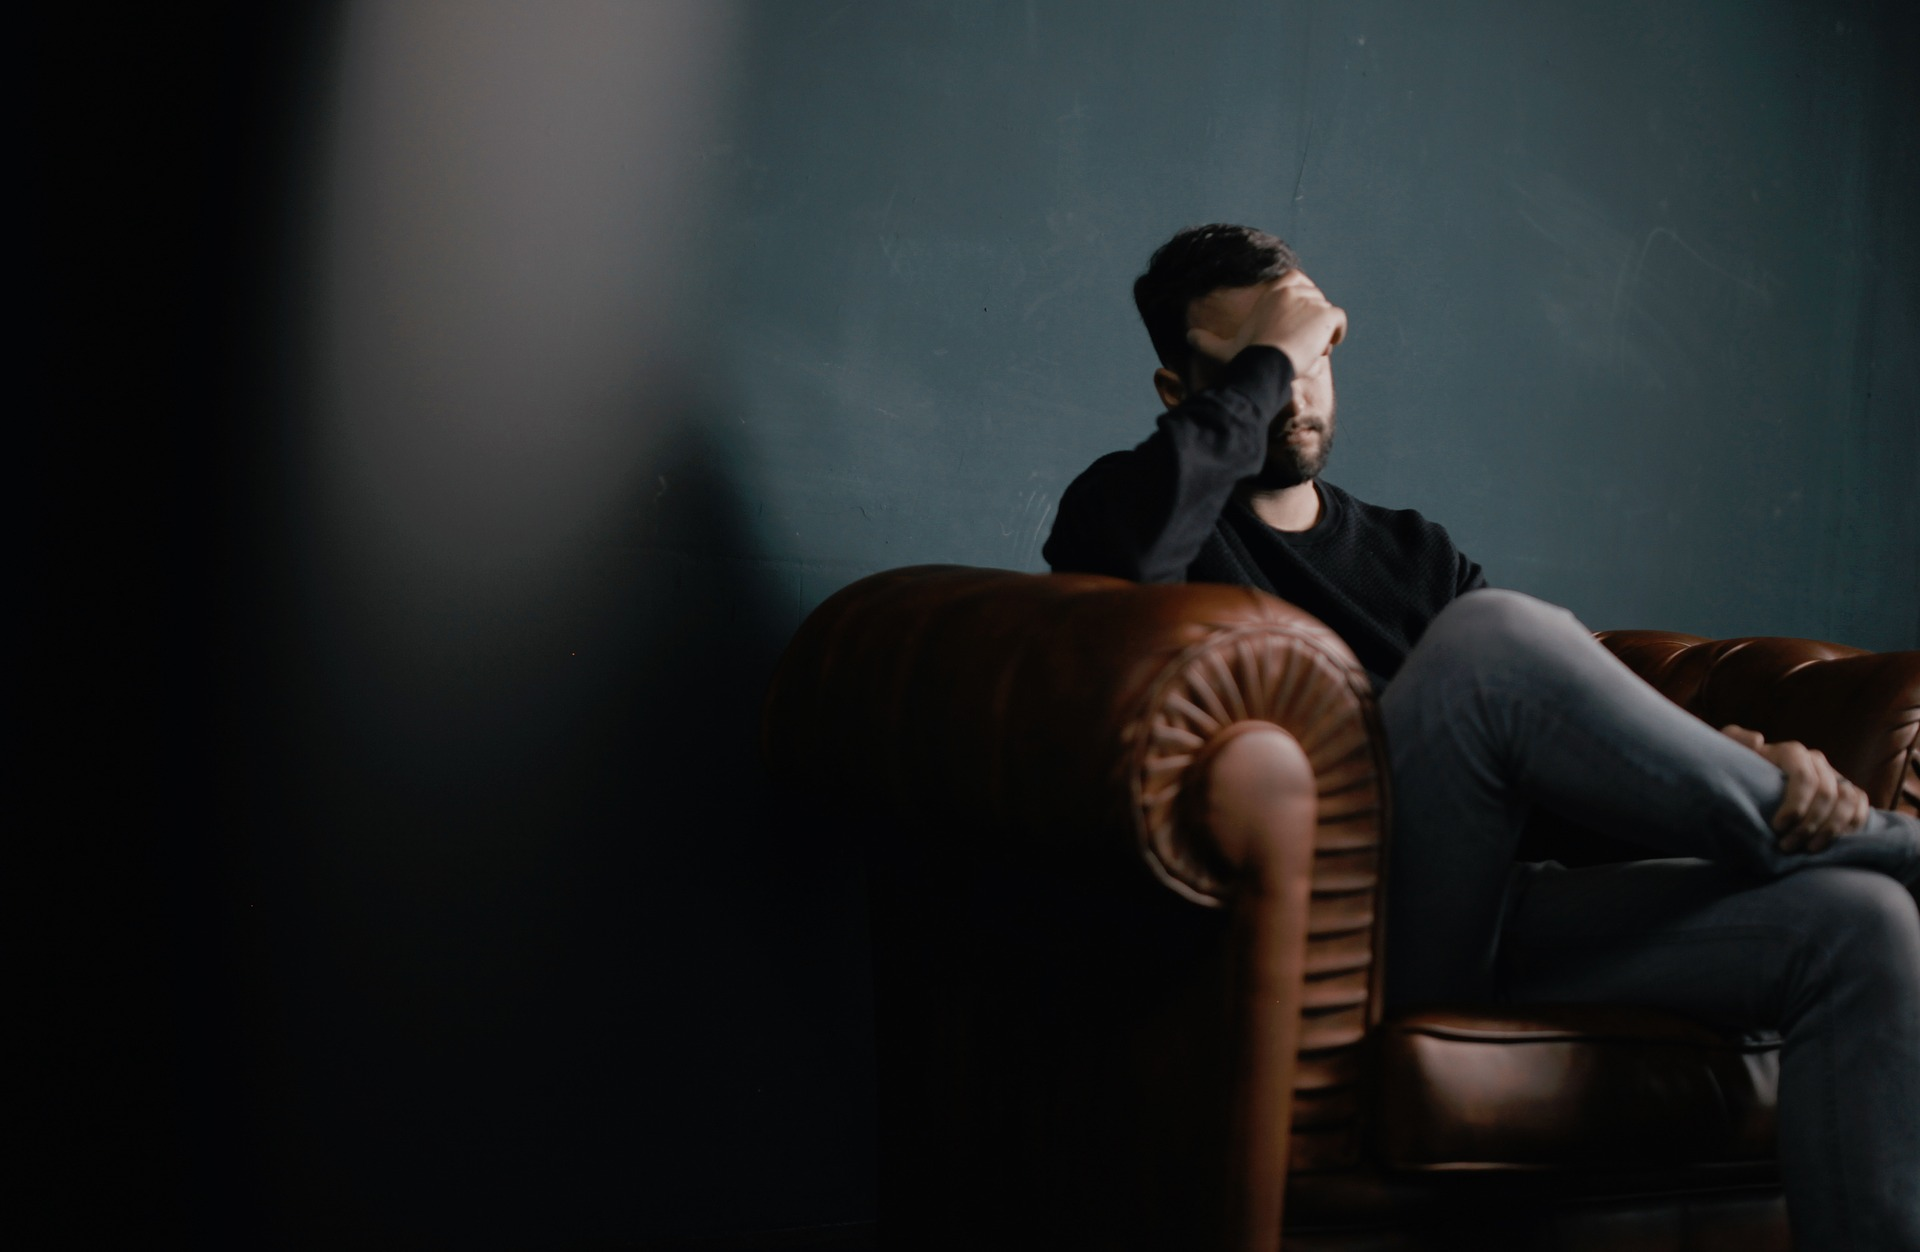 Man sitting on brown couch in a dark room holding his head, upset.